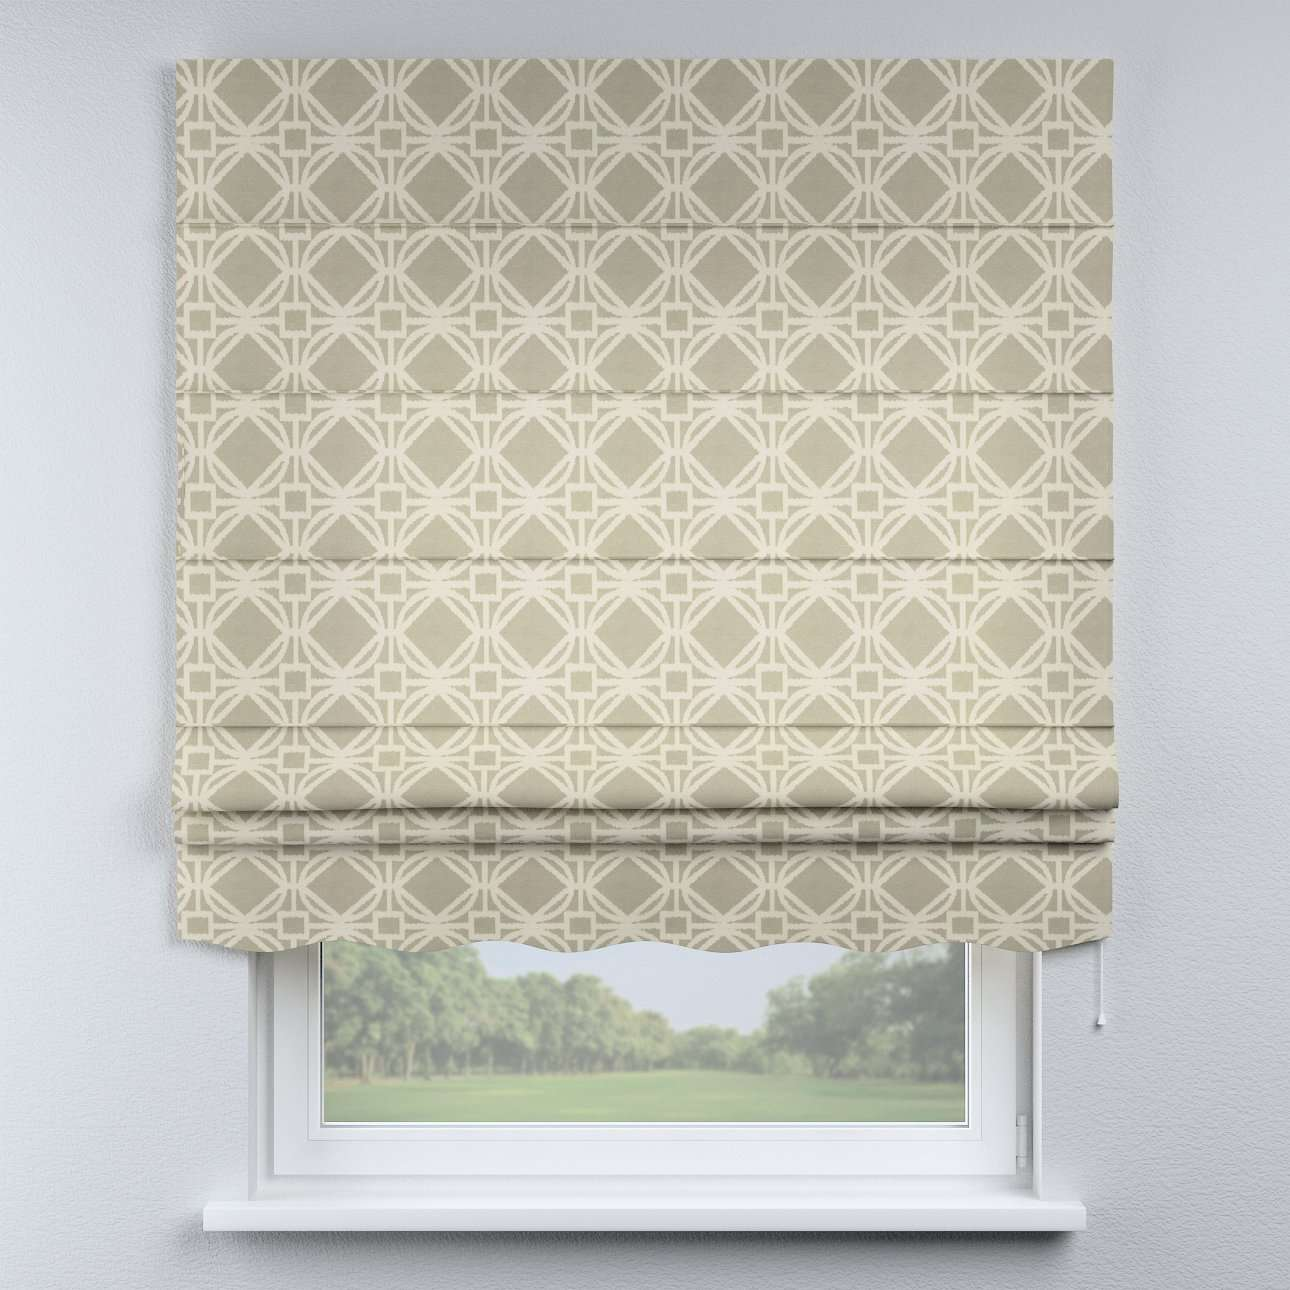 Florence roman blind  80 x 170 cm (31.5 x 67 inch) in collection Comic Book & Geo Prints, fabric: 141-56